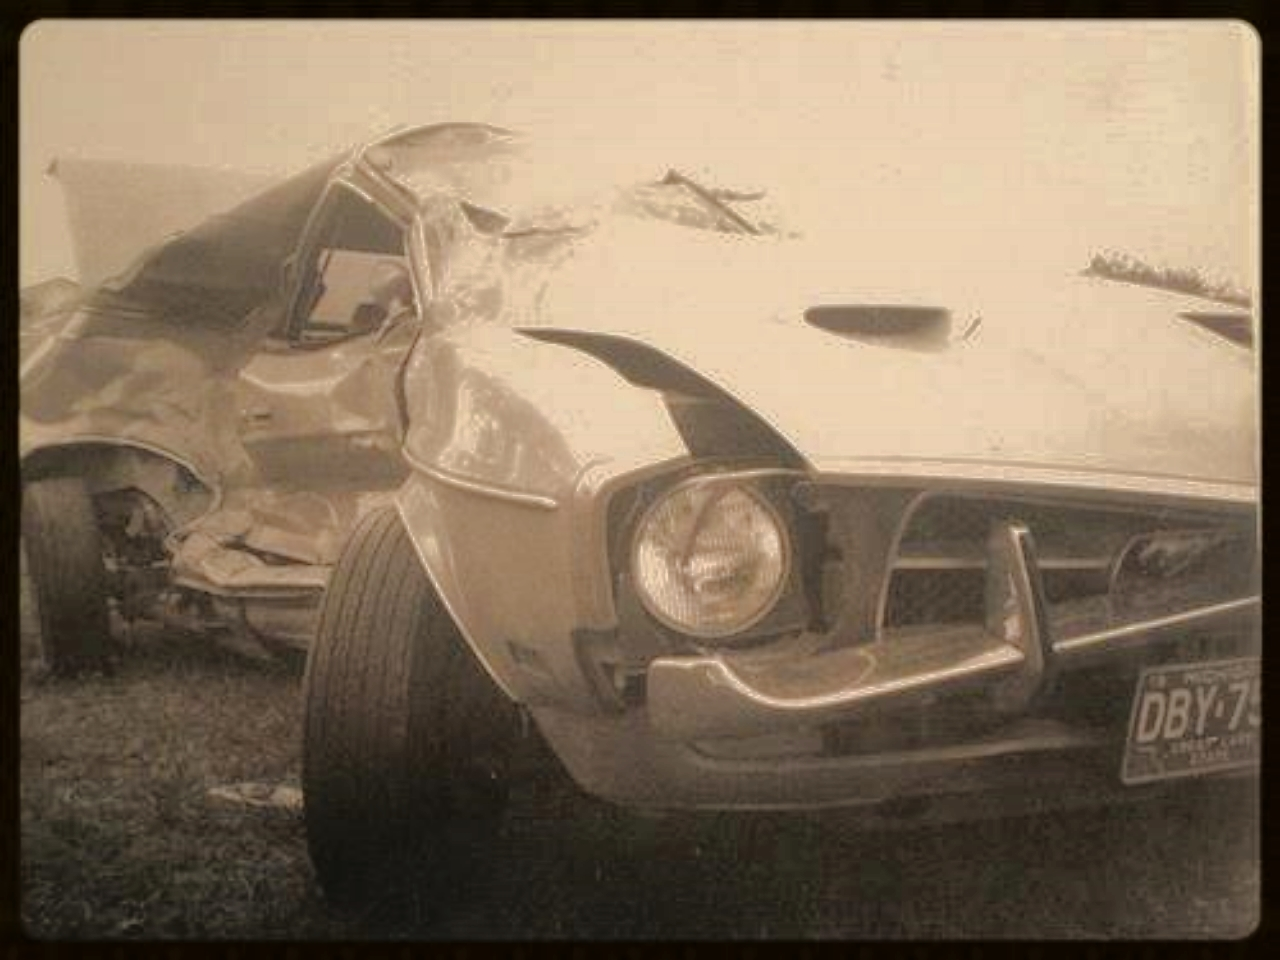 Fri  day, September 15, 1972. Fellow officer, Dennis Neimic, was on a narcotics investigation in Detroit using my Mustang when he was broadsided by a motorist who ran a red light. Neimic lived, but was hospitalized for weeks.